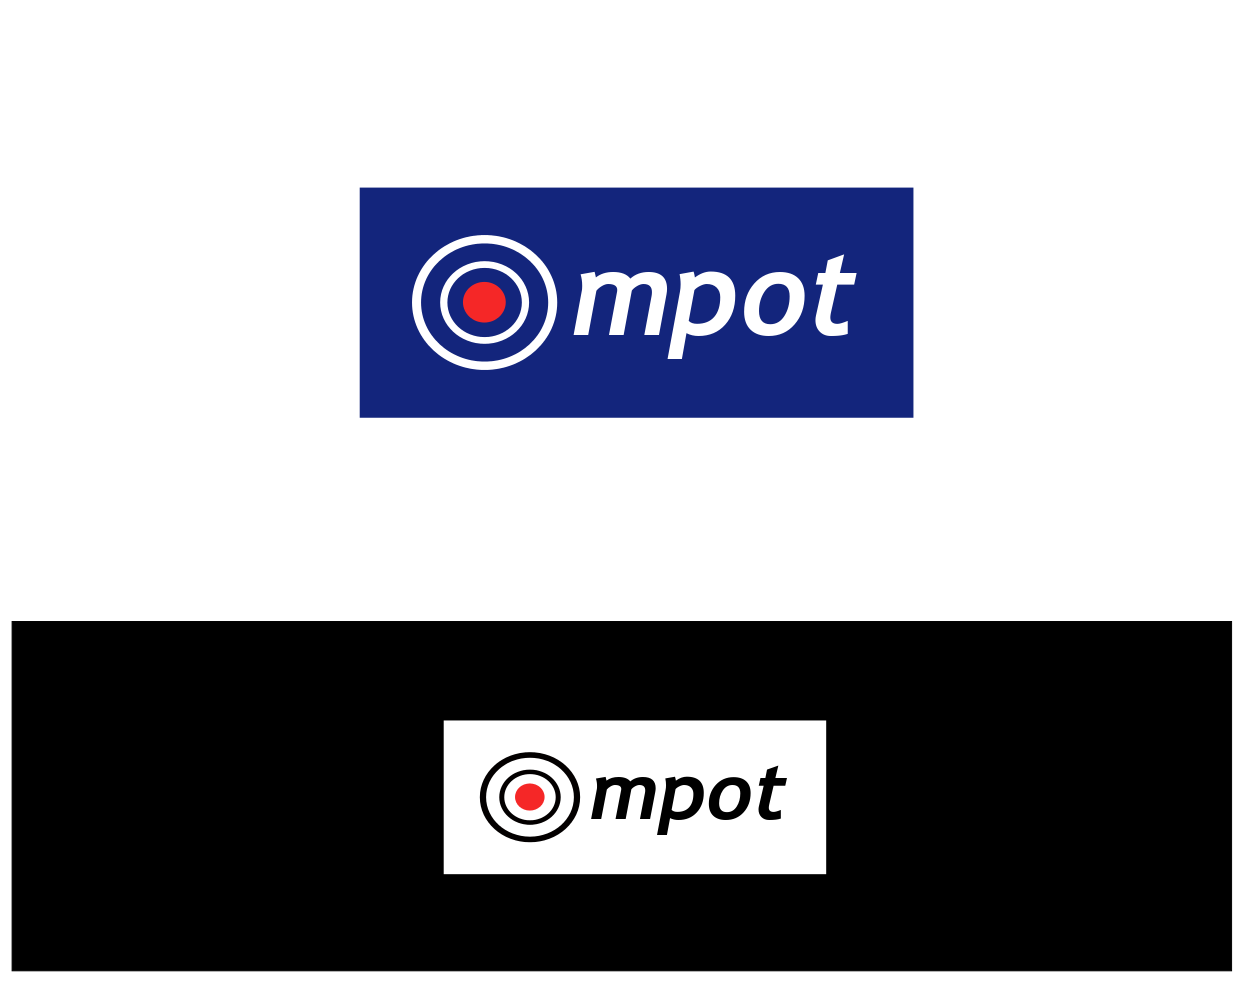 Logo Design by JaroslavProcka - Entry No. 185 in the Logo Design Contest Mpot inc  Logo Design.